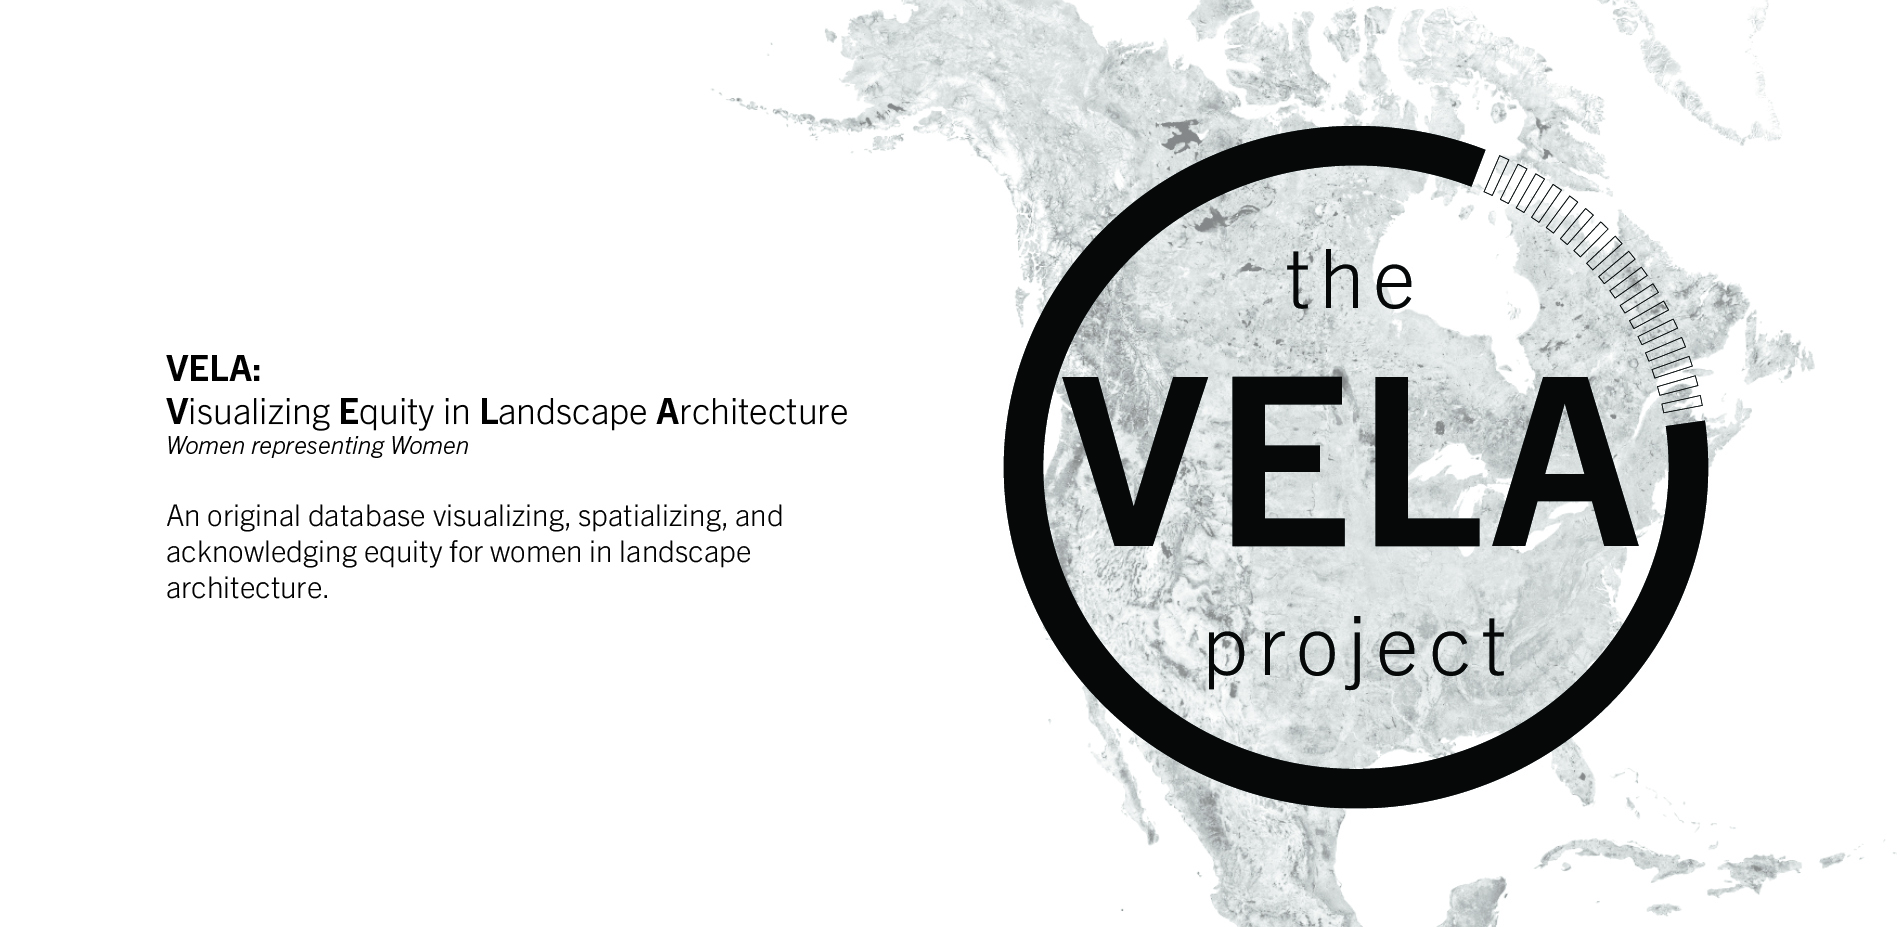 The VELA Project